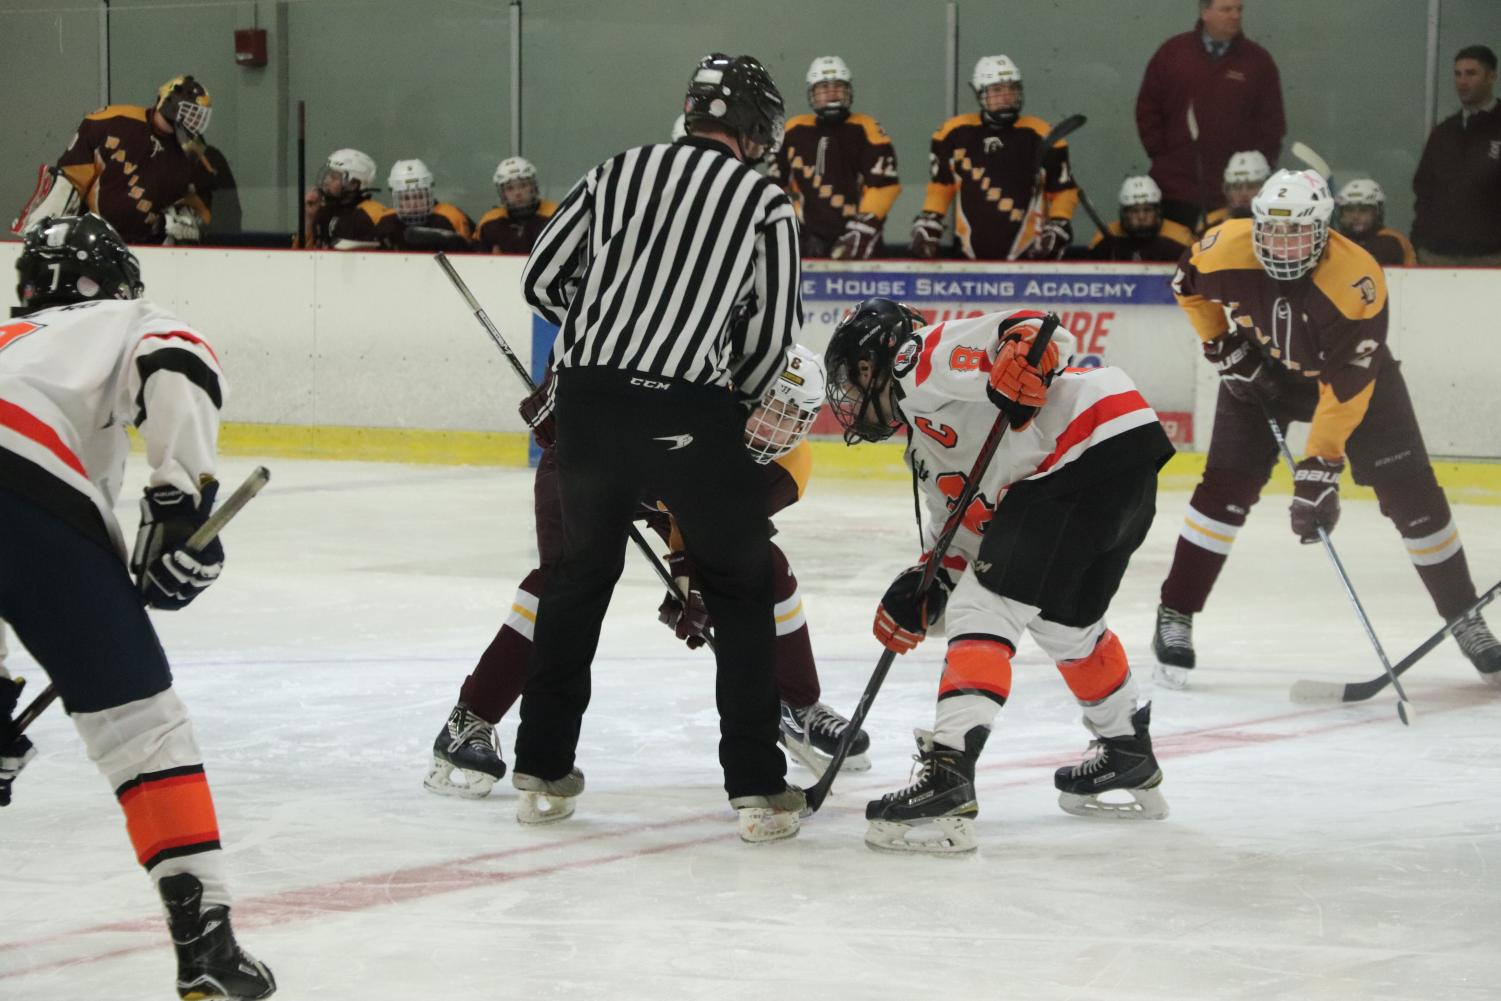 Senior Dylan Conte faces off against his opponent in the 2017-2018 hockey season. Tryouts for the 2018-2019 season were held on Oct. 29-31.